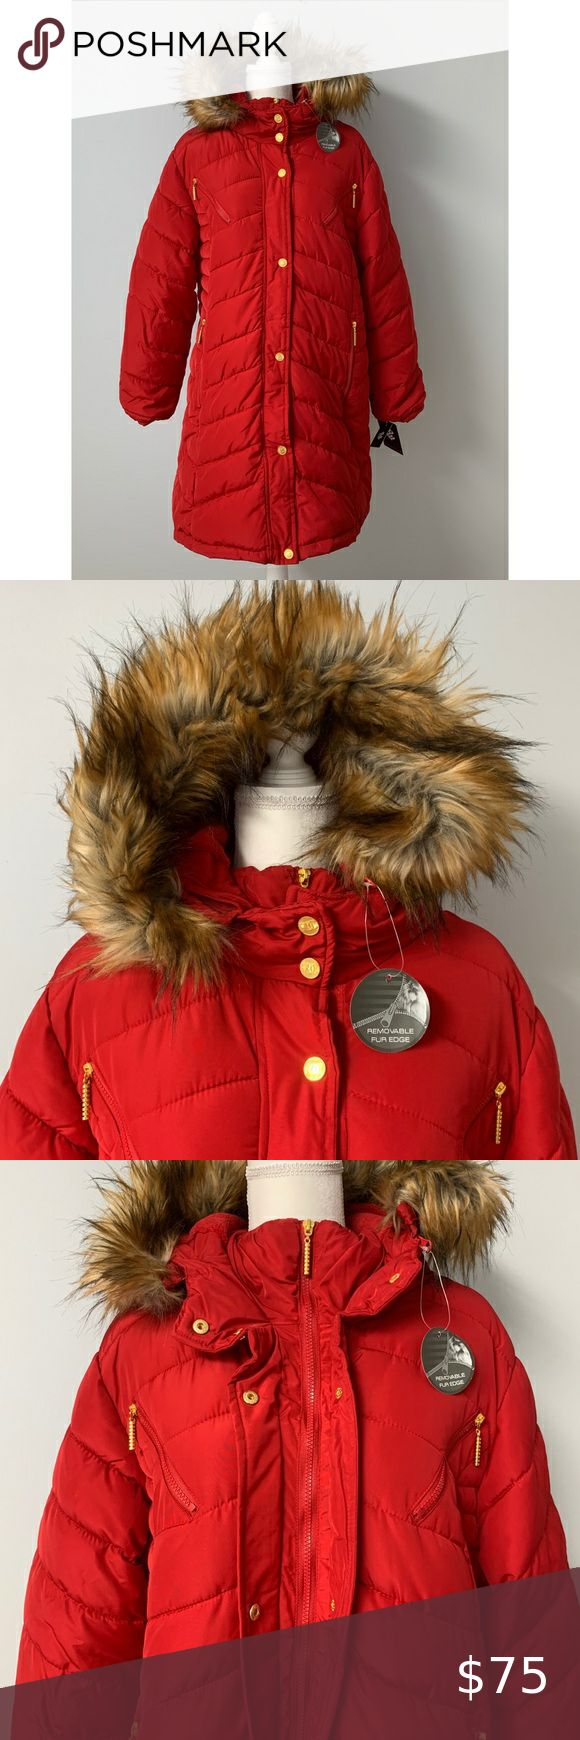 Rocawear Red Puffer Parka Coat NWT in 2020 | Parka coat ...